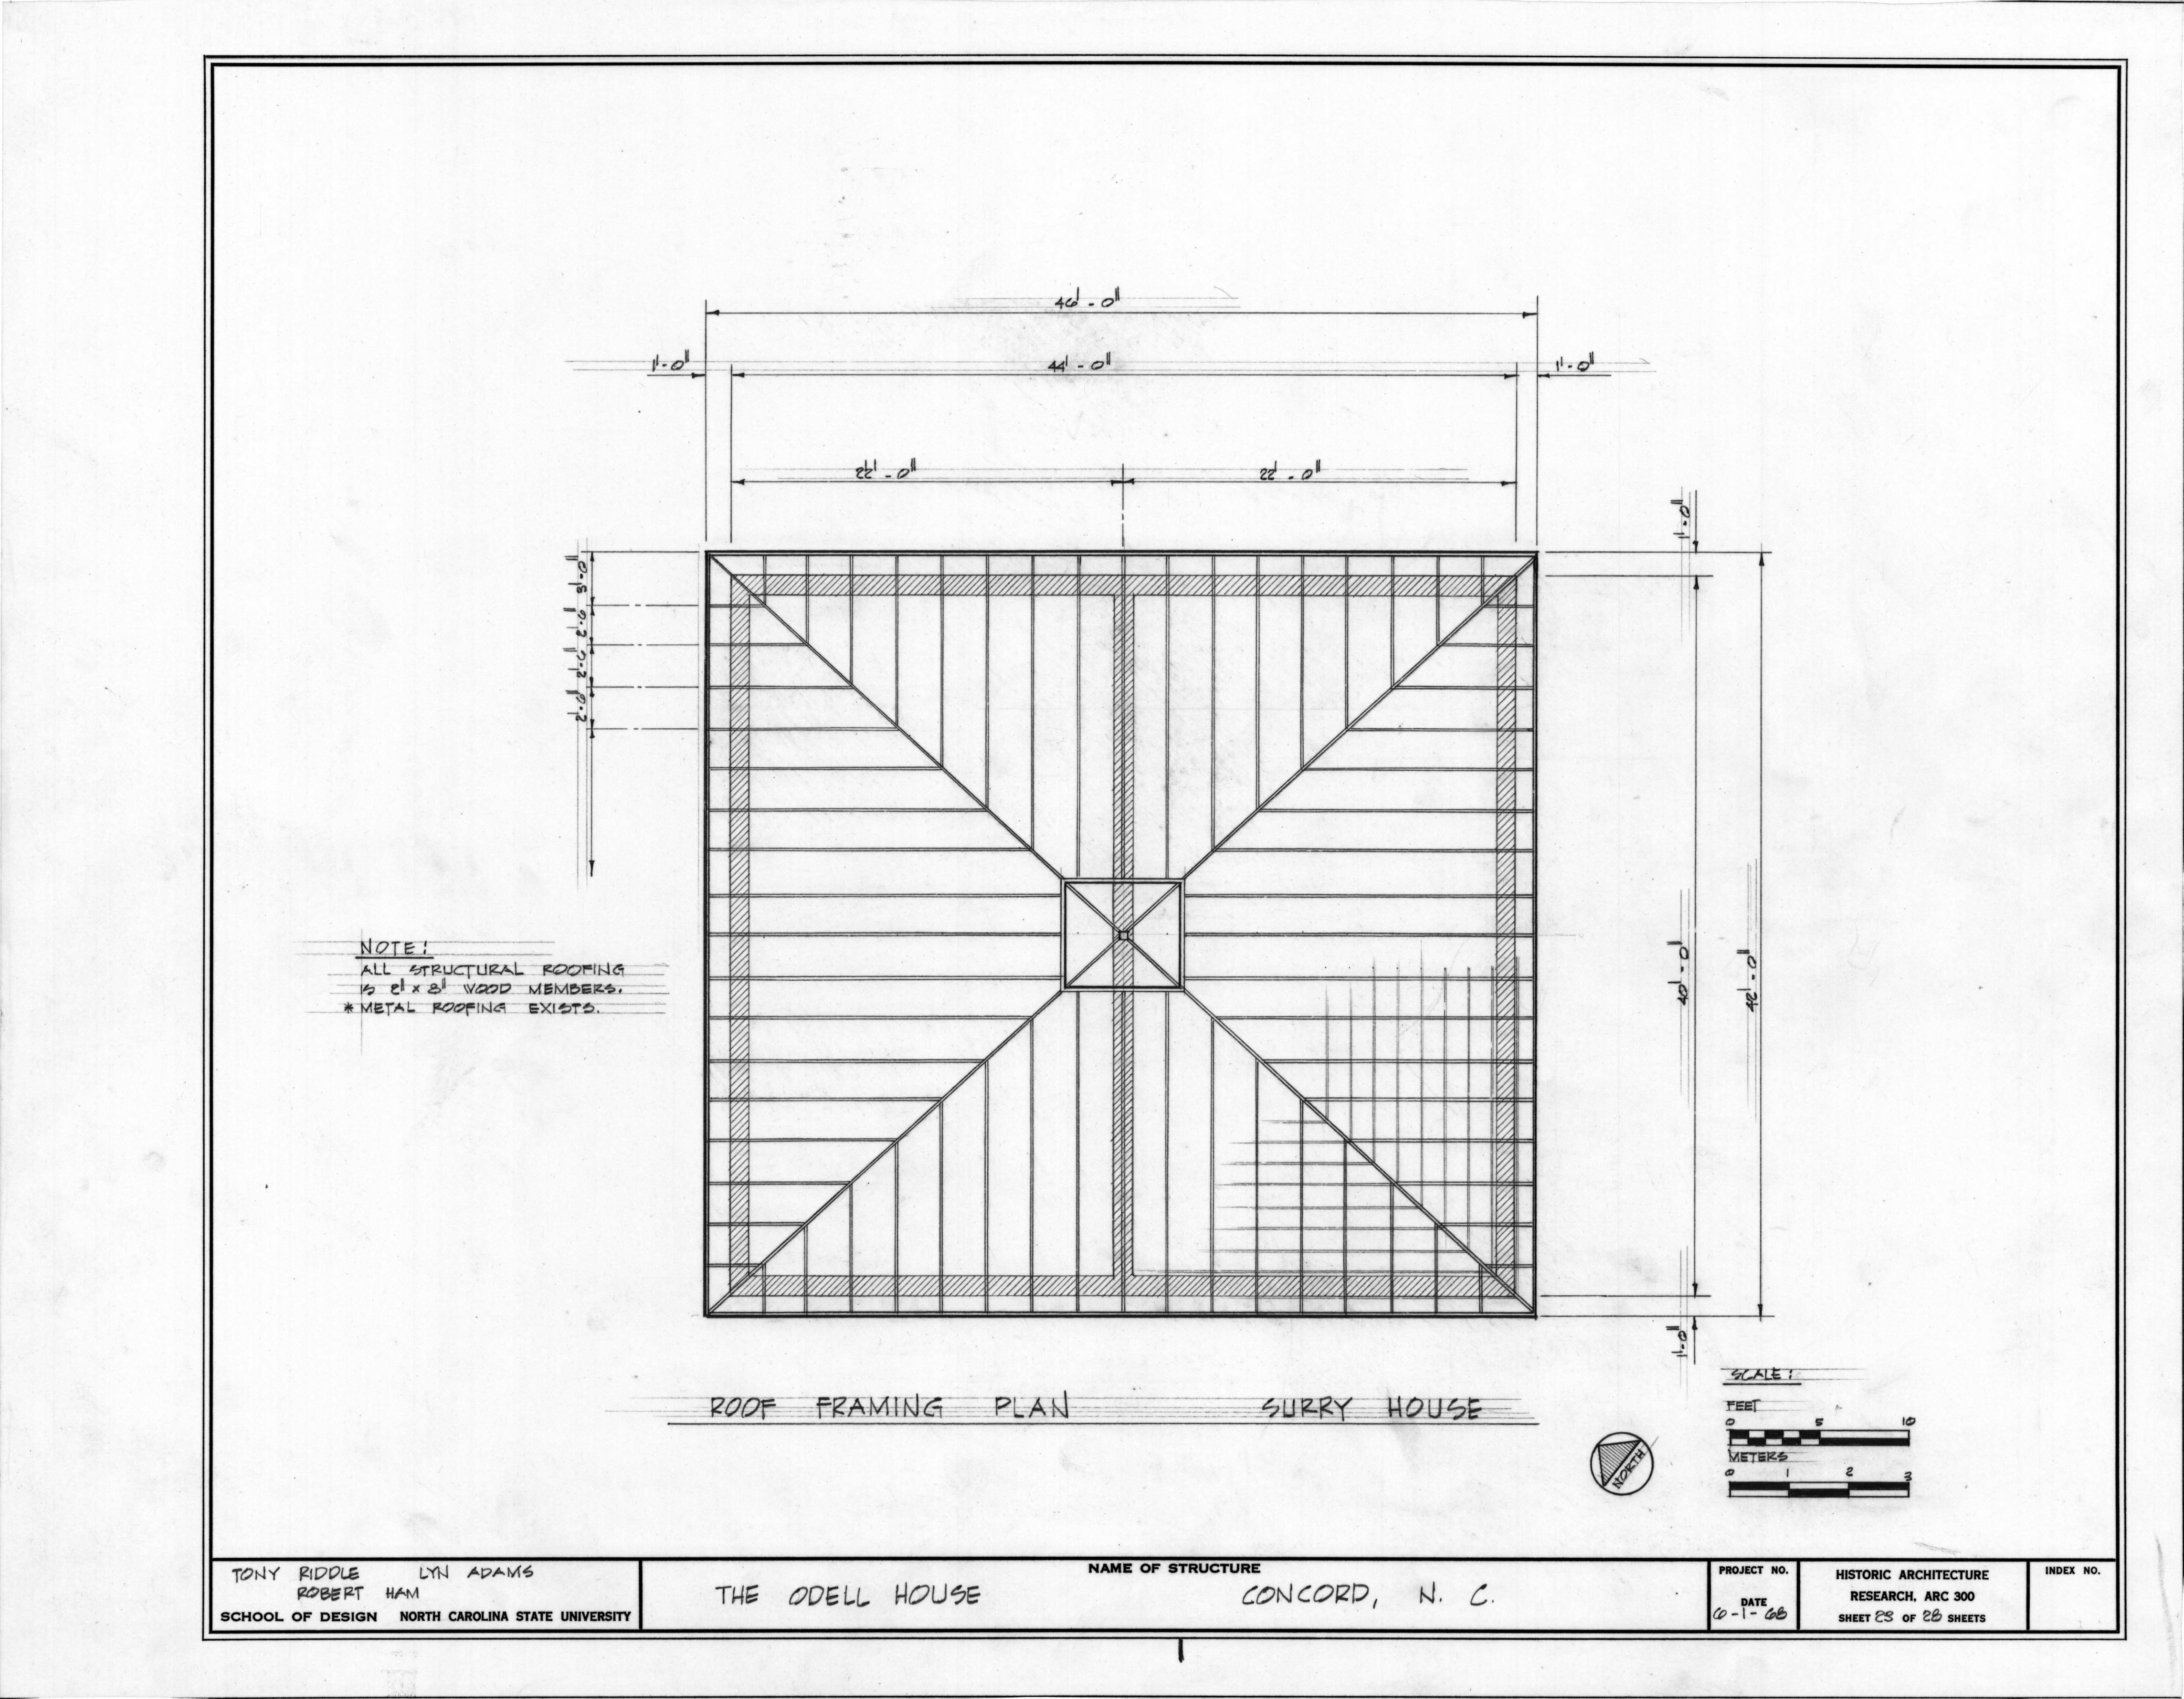 Roof framing plan of carriage house john milton odell for Roof plan drawing